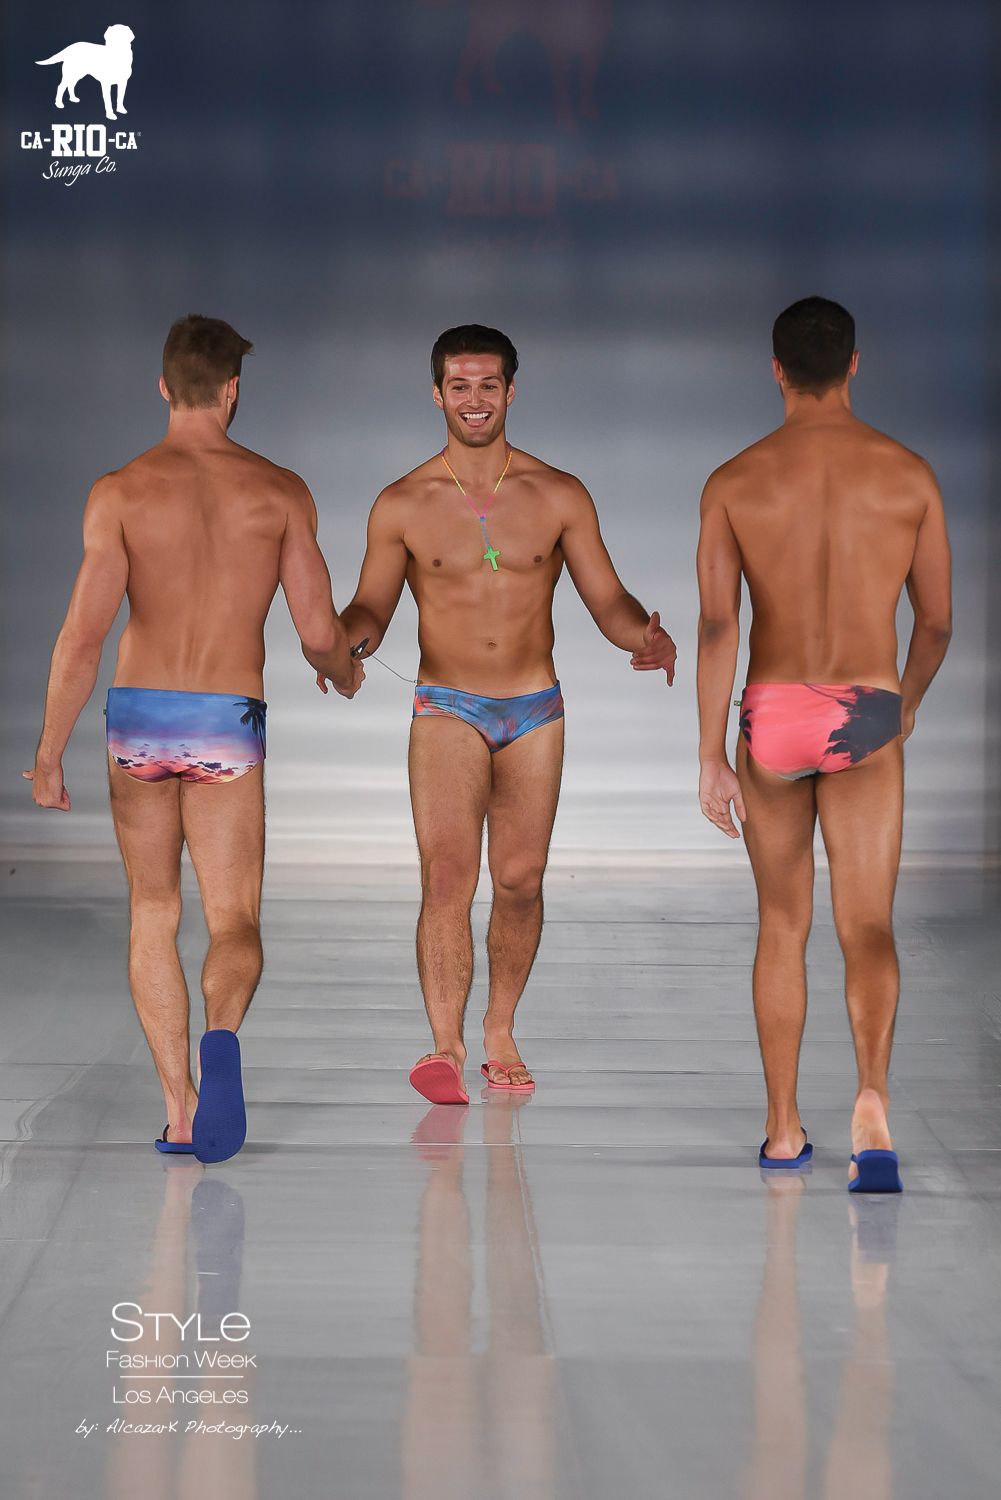 Rocking the Runway with CA-RIO-CA